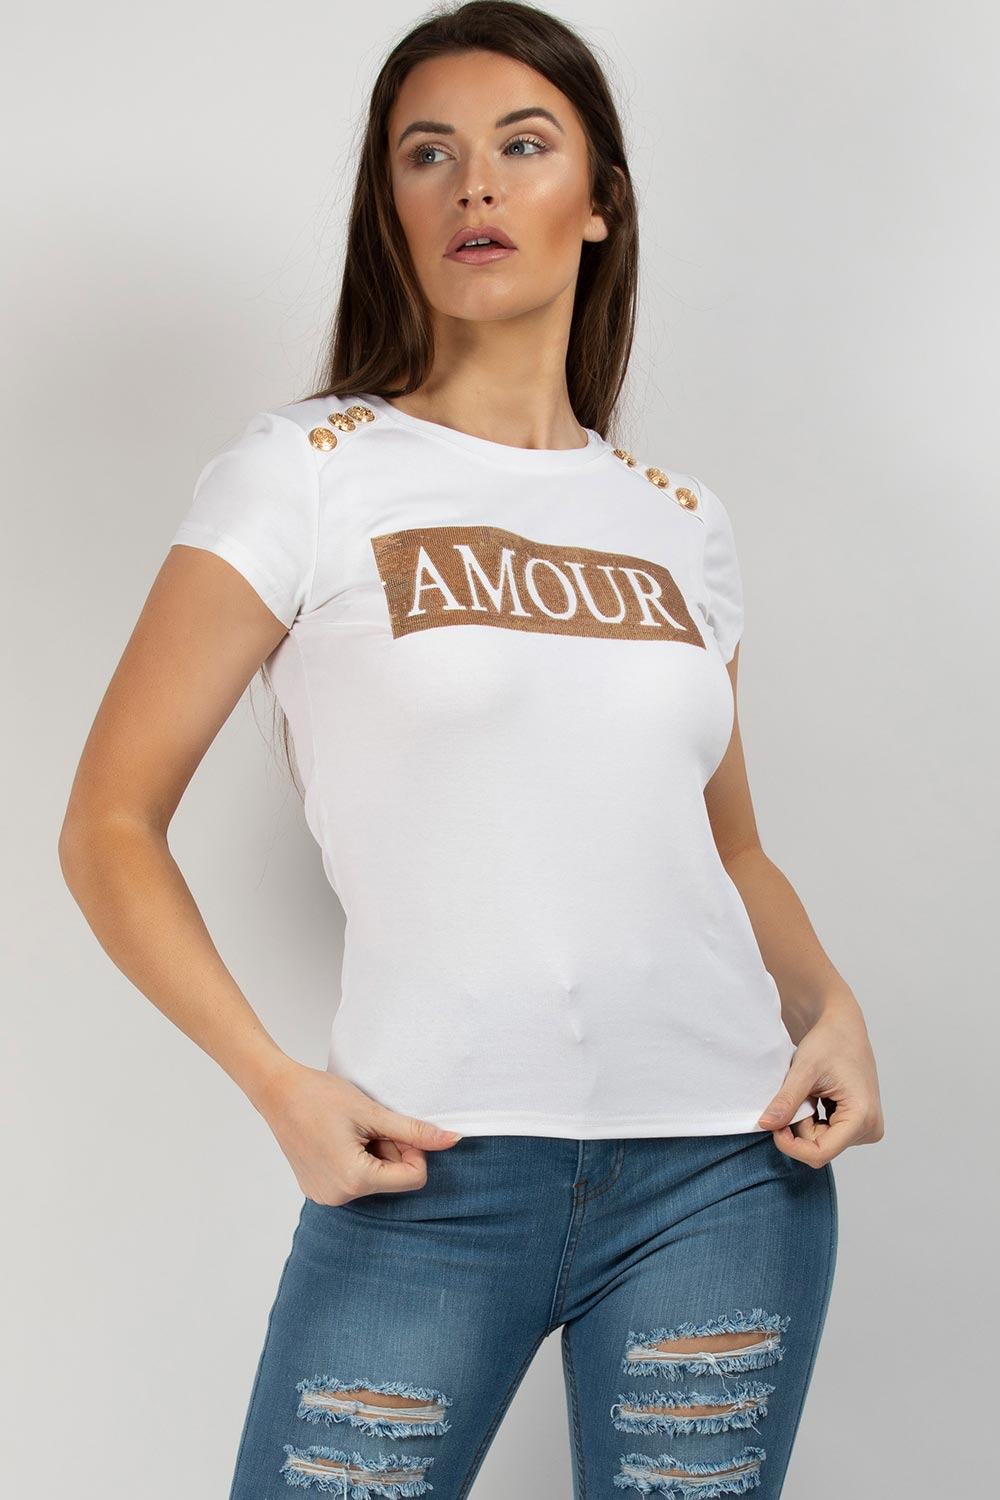 gold sequin amour slogan t shirt white